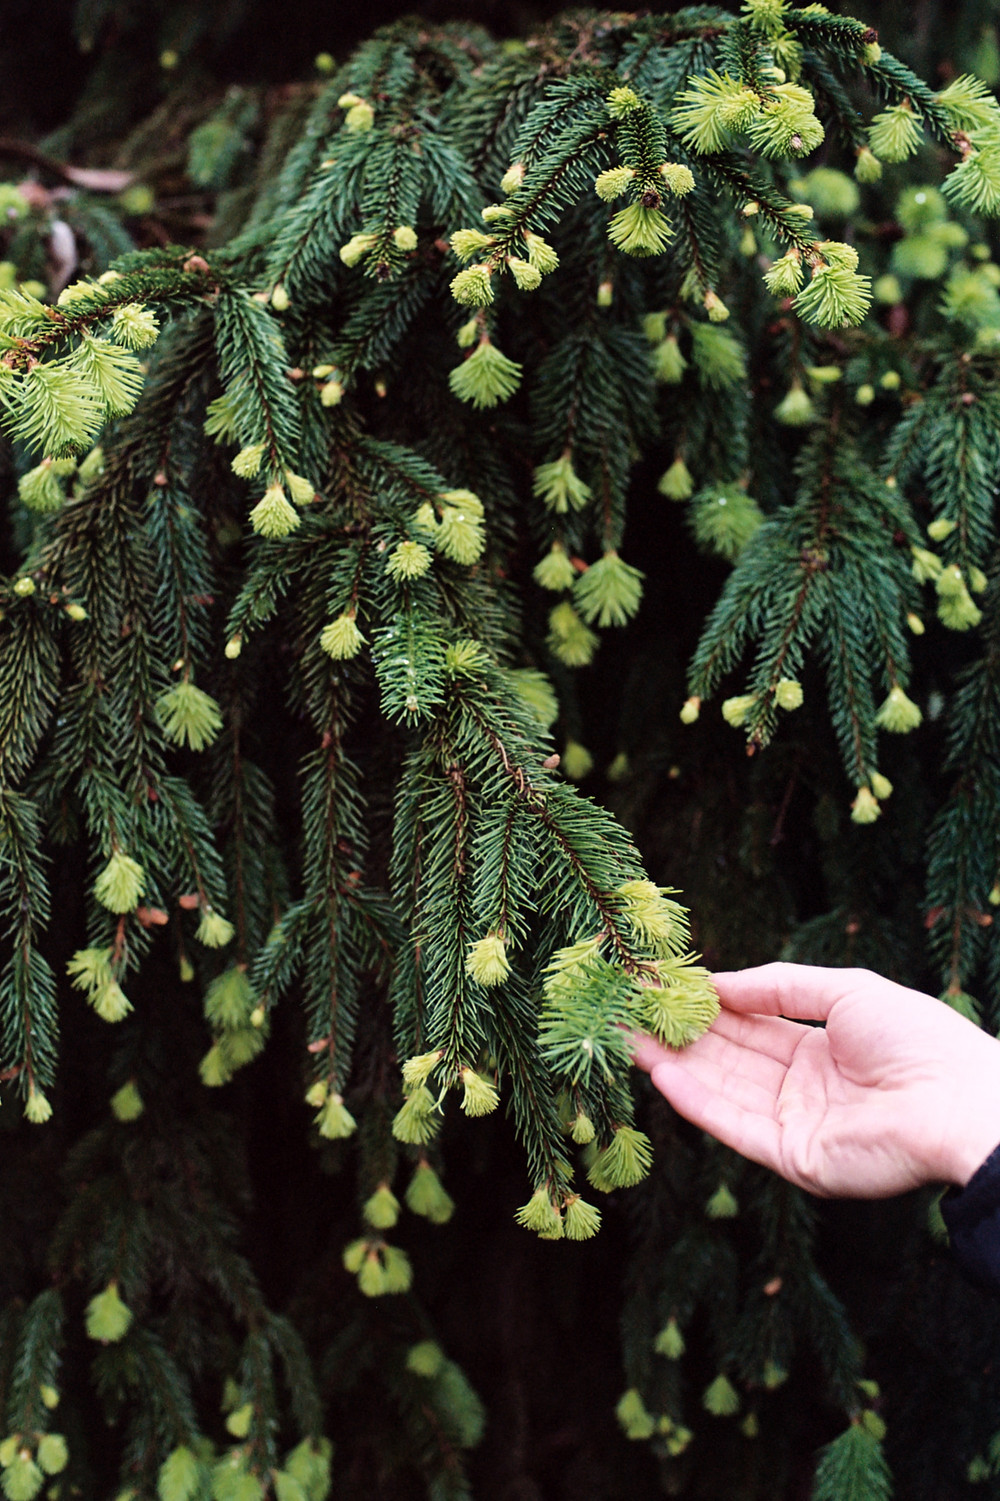 guaiol terpenes can be found in pine trees